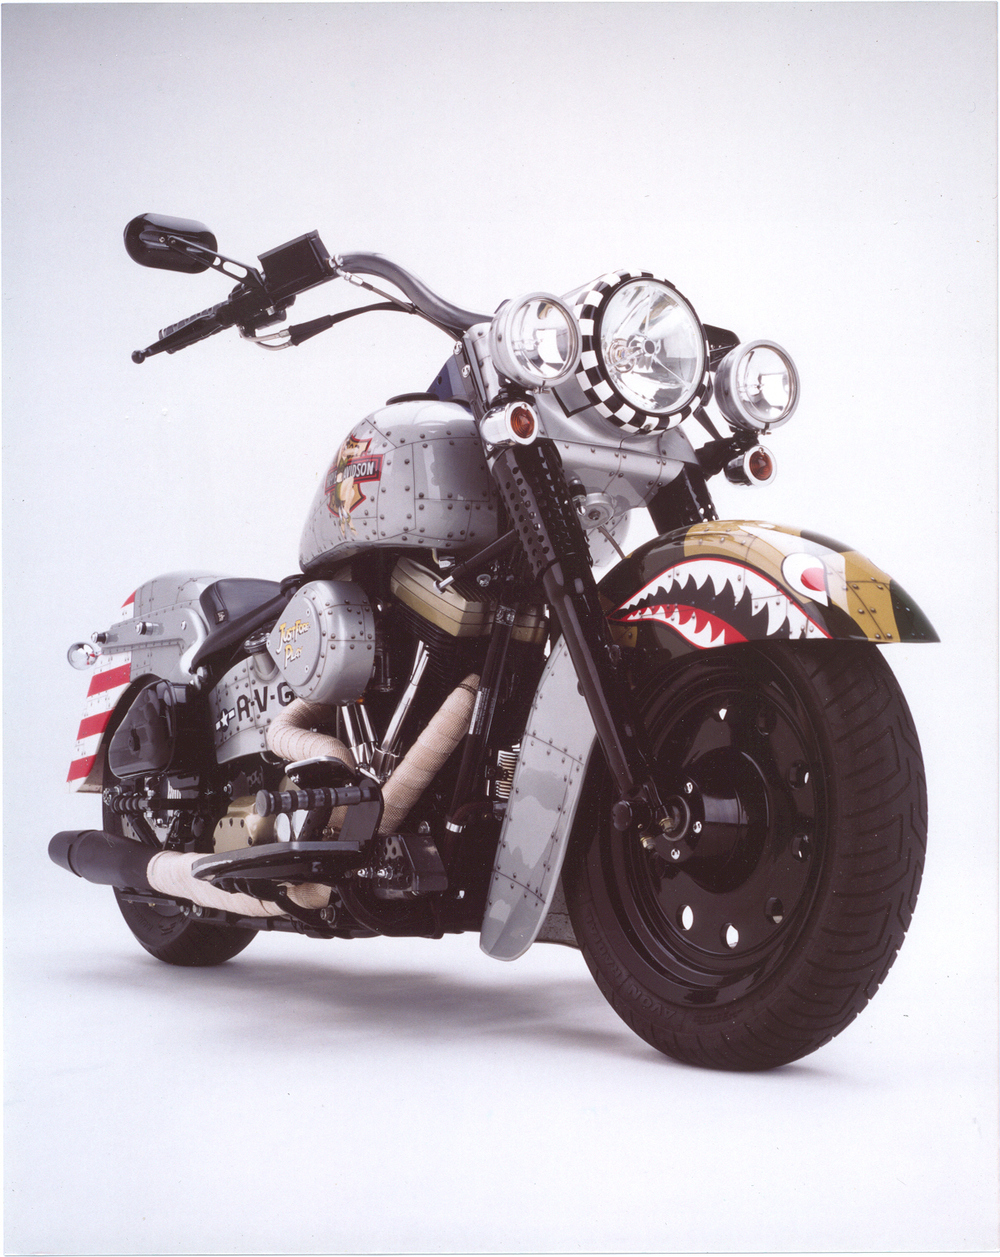 1991 HD Custom Softail.